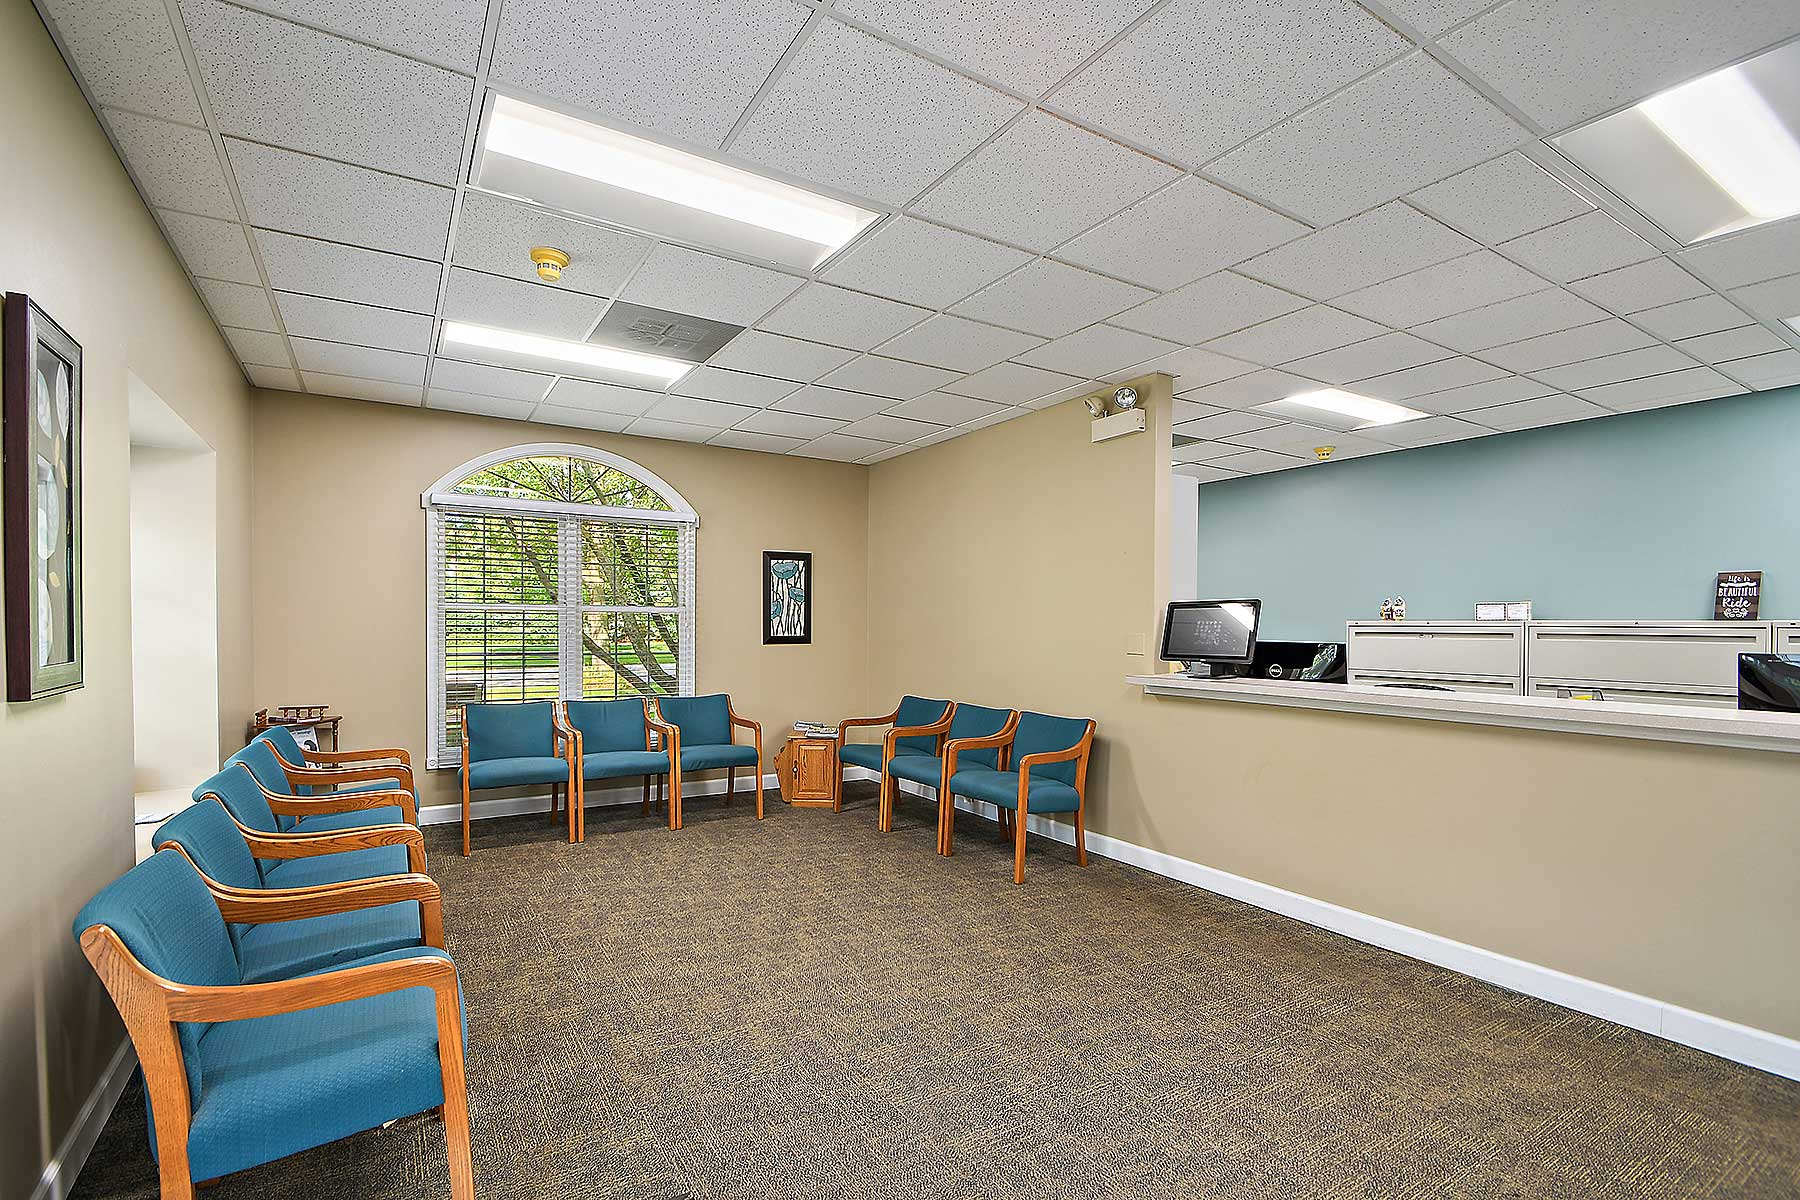 Orthodontic patient waiting room at Sonneveld Orthodontics. Orthodontic reception desk is located on the right hand side of the image, teal chairs are on each side of the walls.